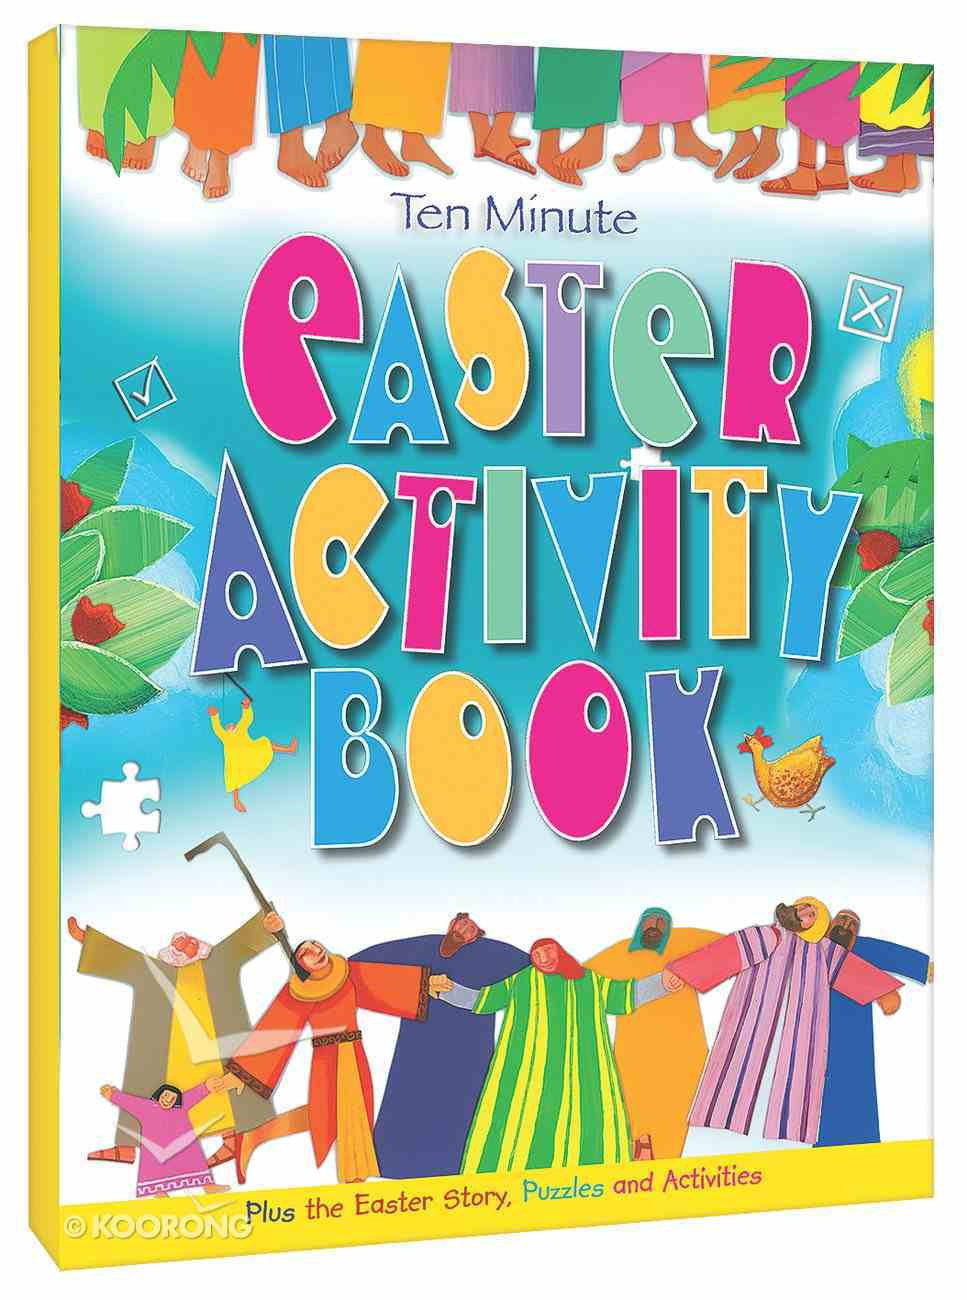 Ten Minute Easter Activity Book Paperback